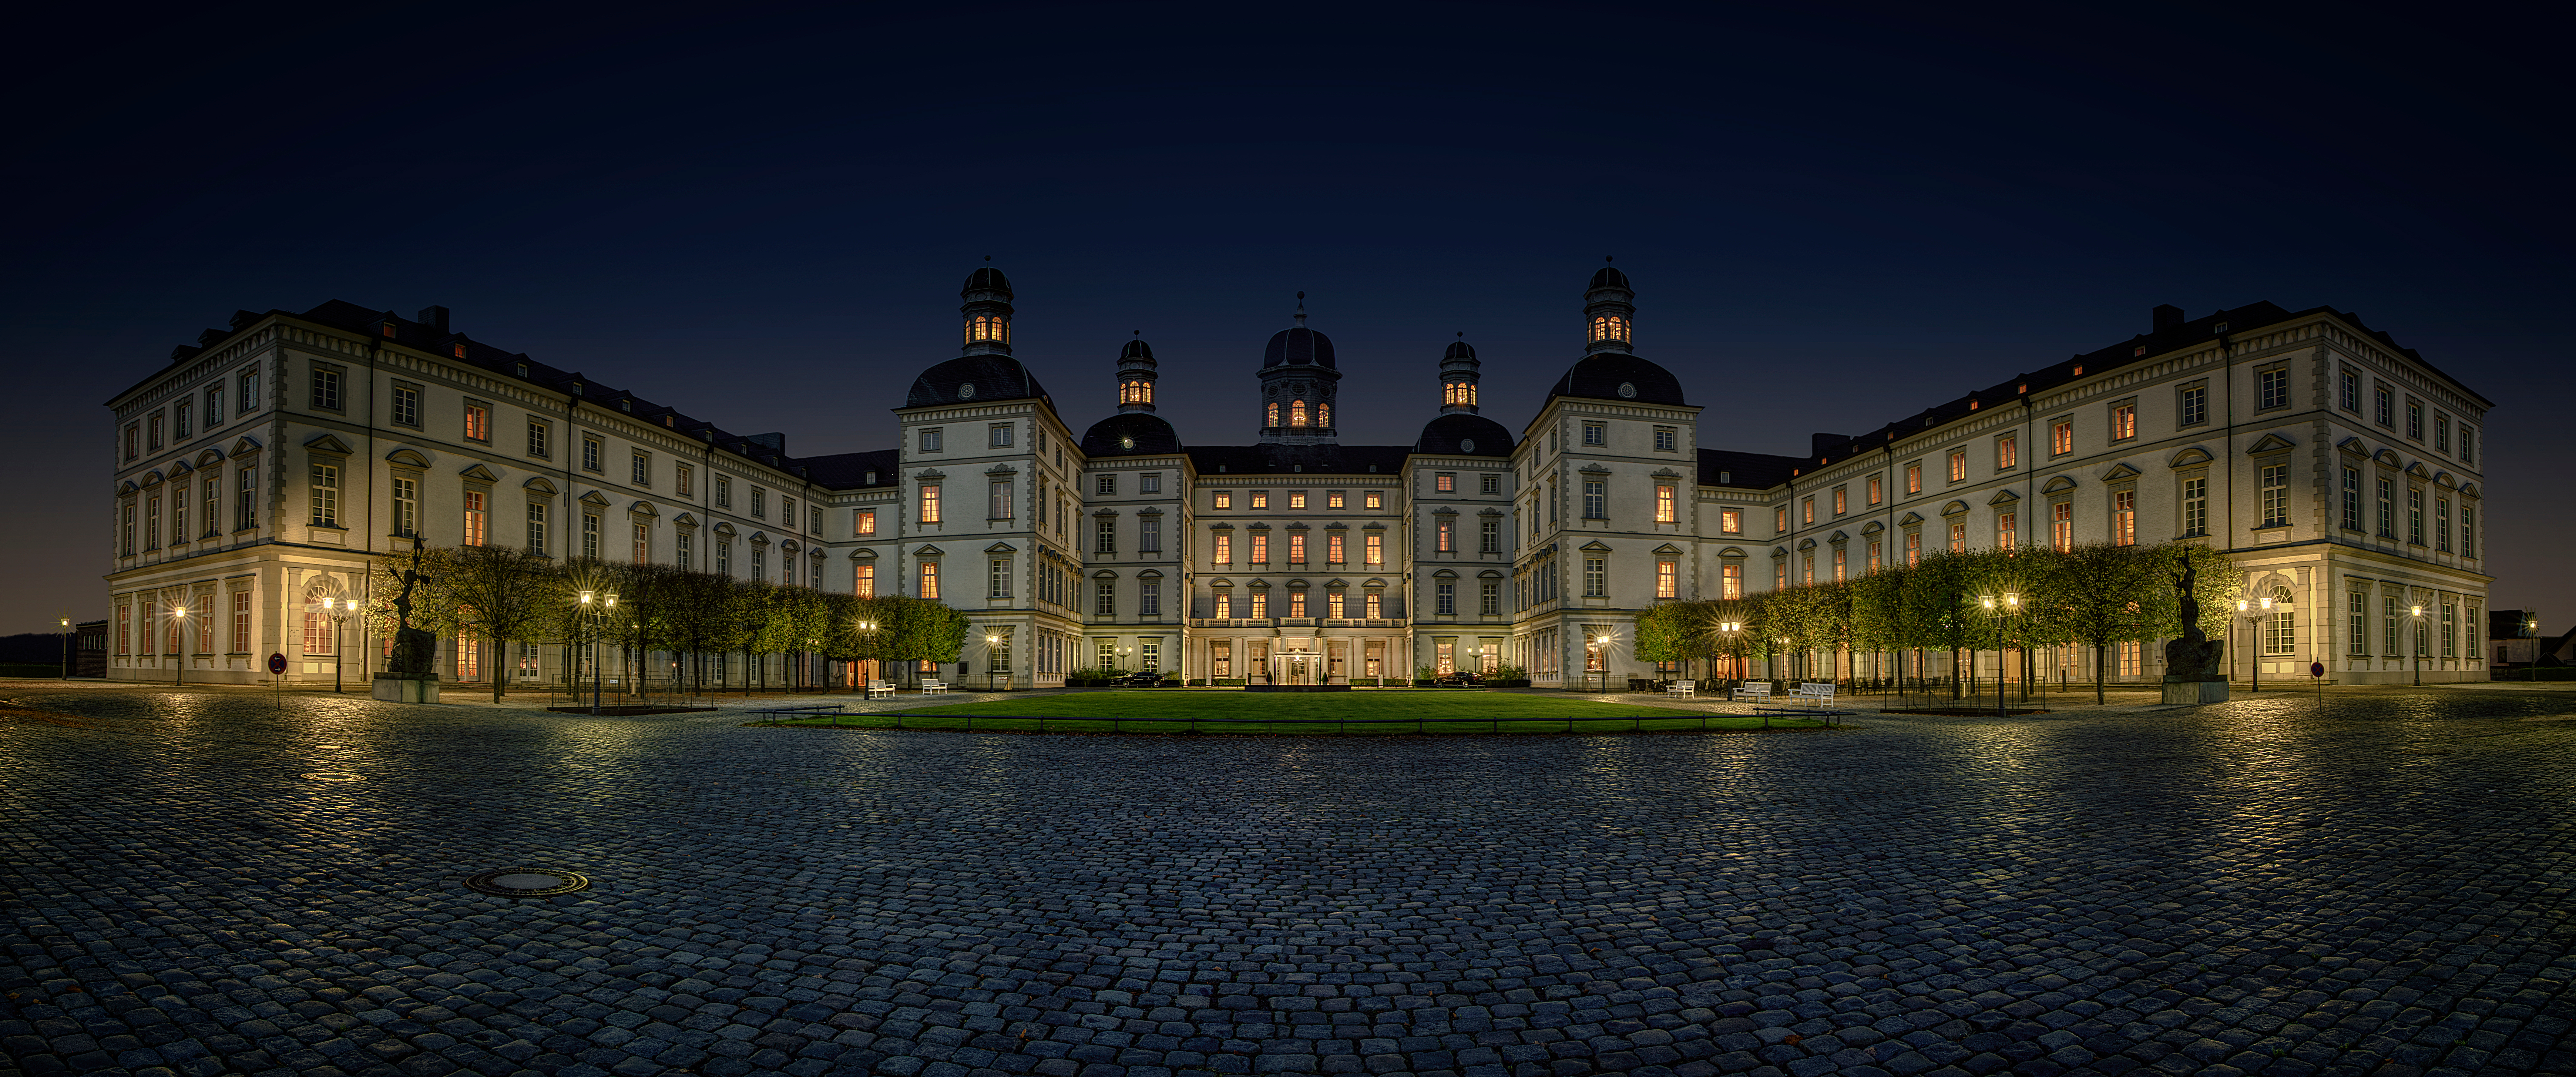 Althoff Grandhotel Schloss Bensberg by night